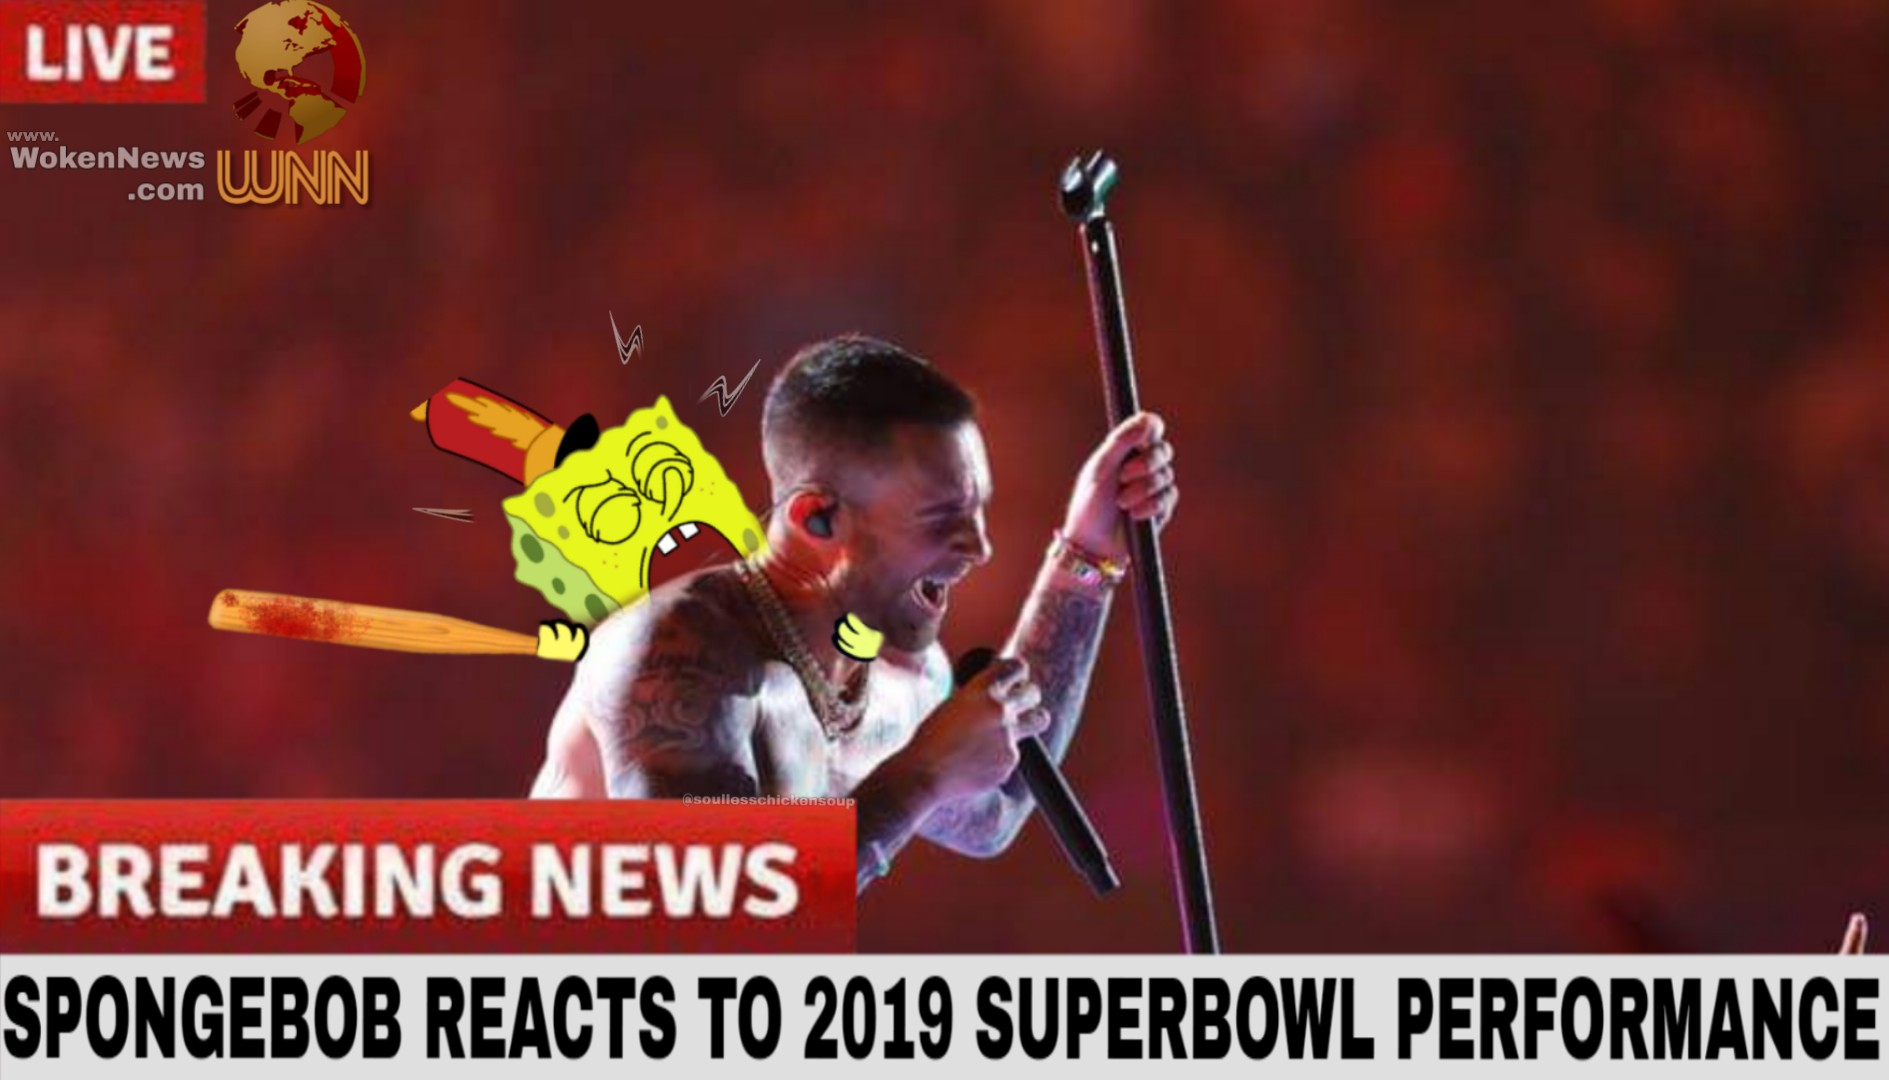 Spongebob reacts to superbowl super bowl liii know your meme